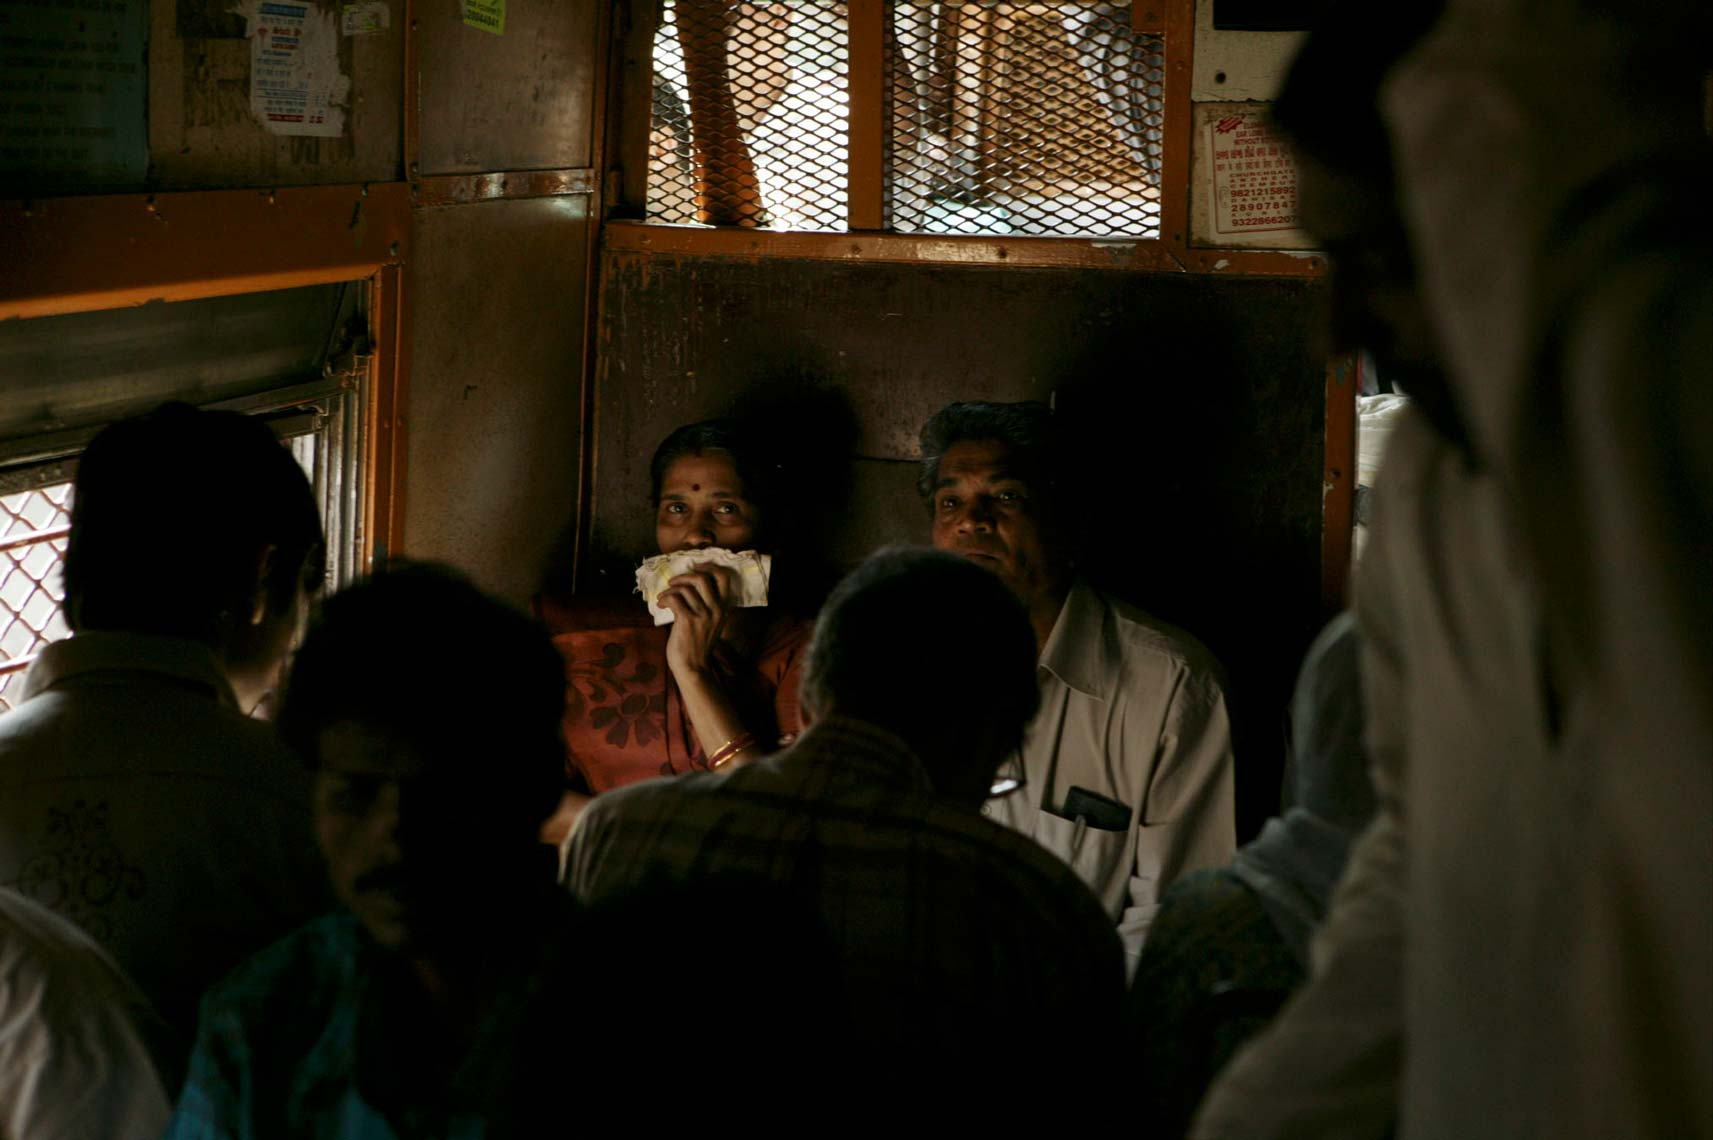 mumbai_trains435.jpg